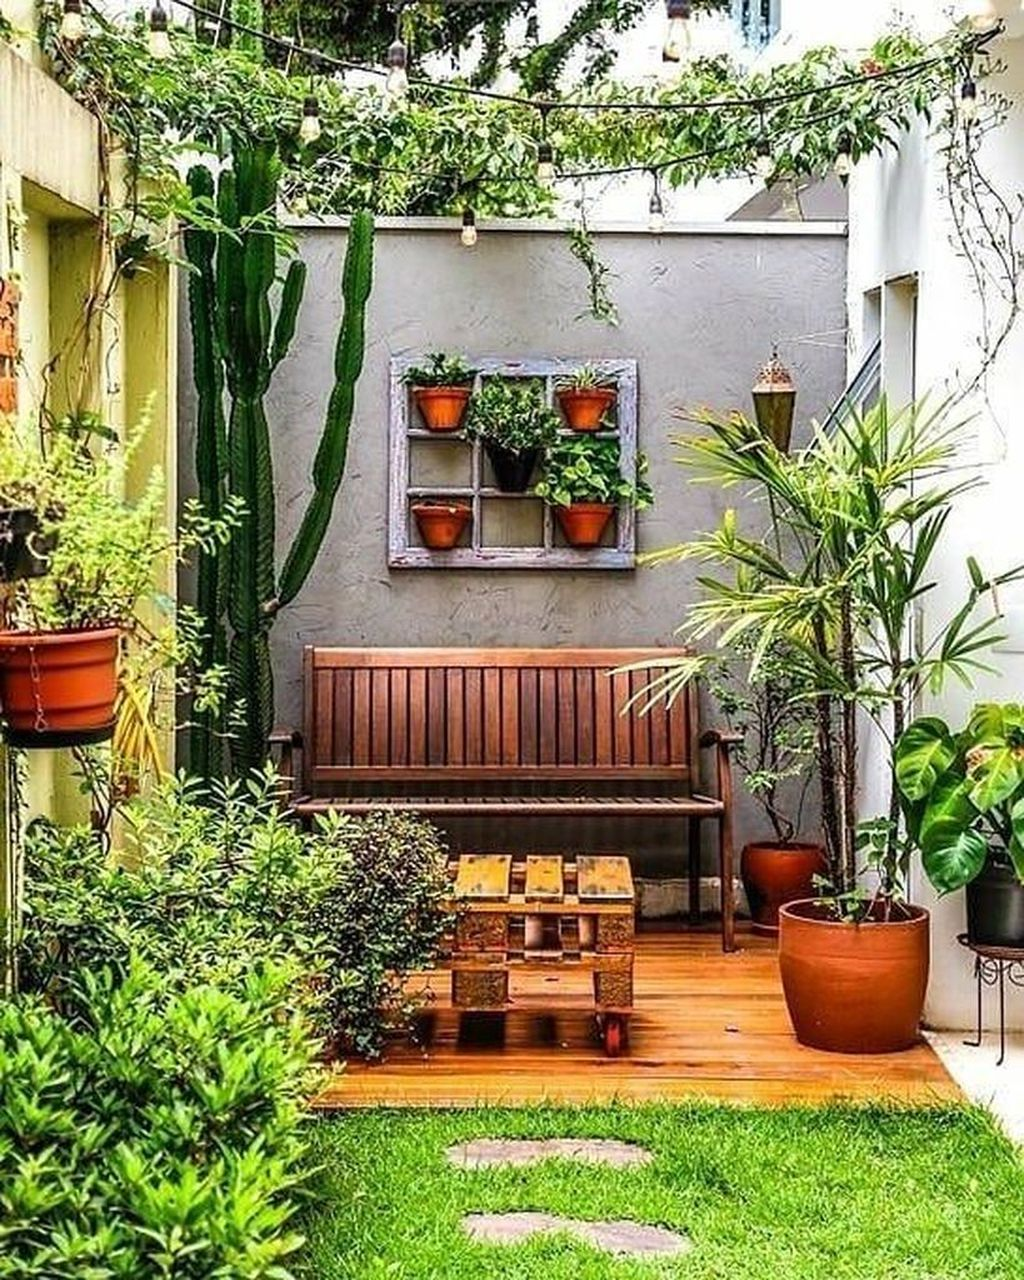 Stunning Apartment Garden Design Ideas 12